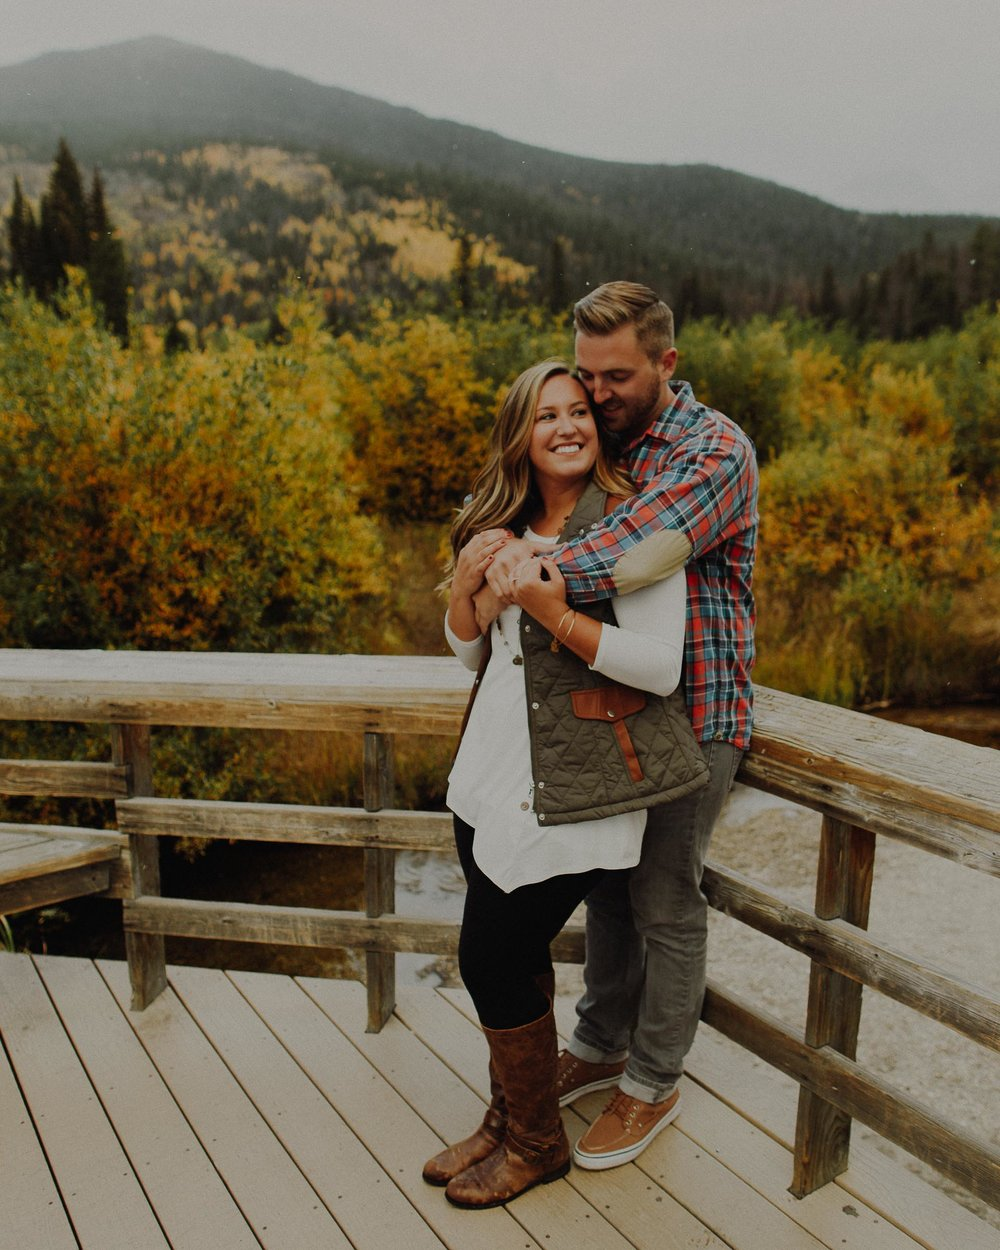 Nate + Molly   Trail Ridge Road & Rocky Mountain National Park Engagement Session View